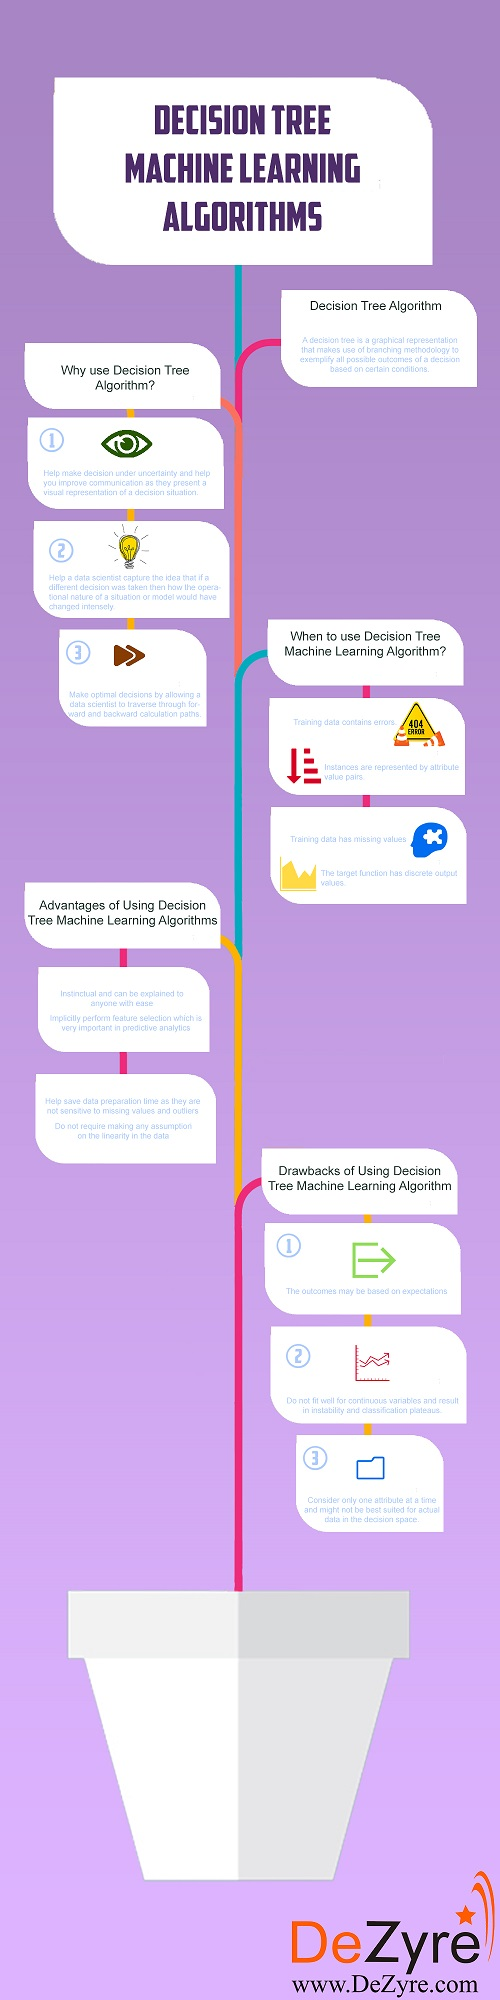 Decision Tree Machine Learning Algorithm Explained